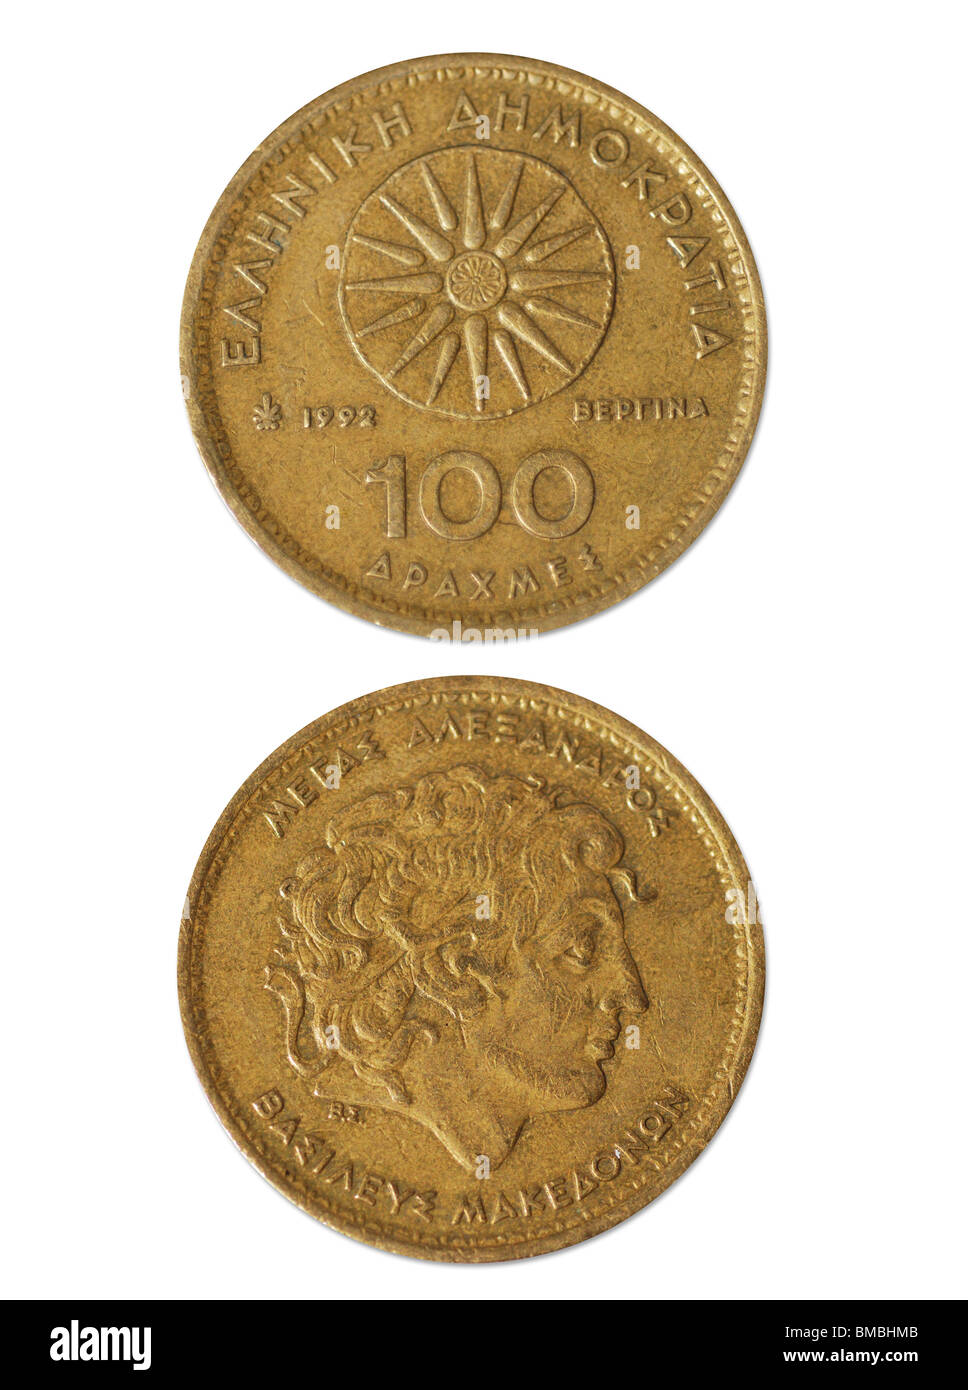 100 Drachmen old Greece Money - Stock Image